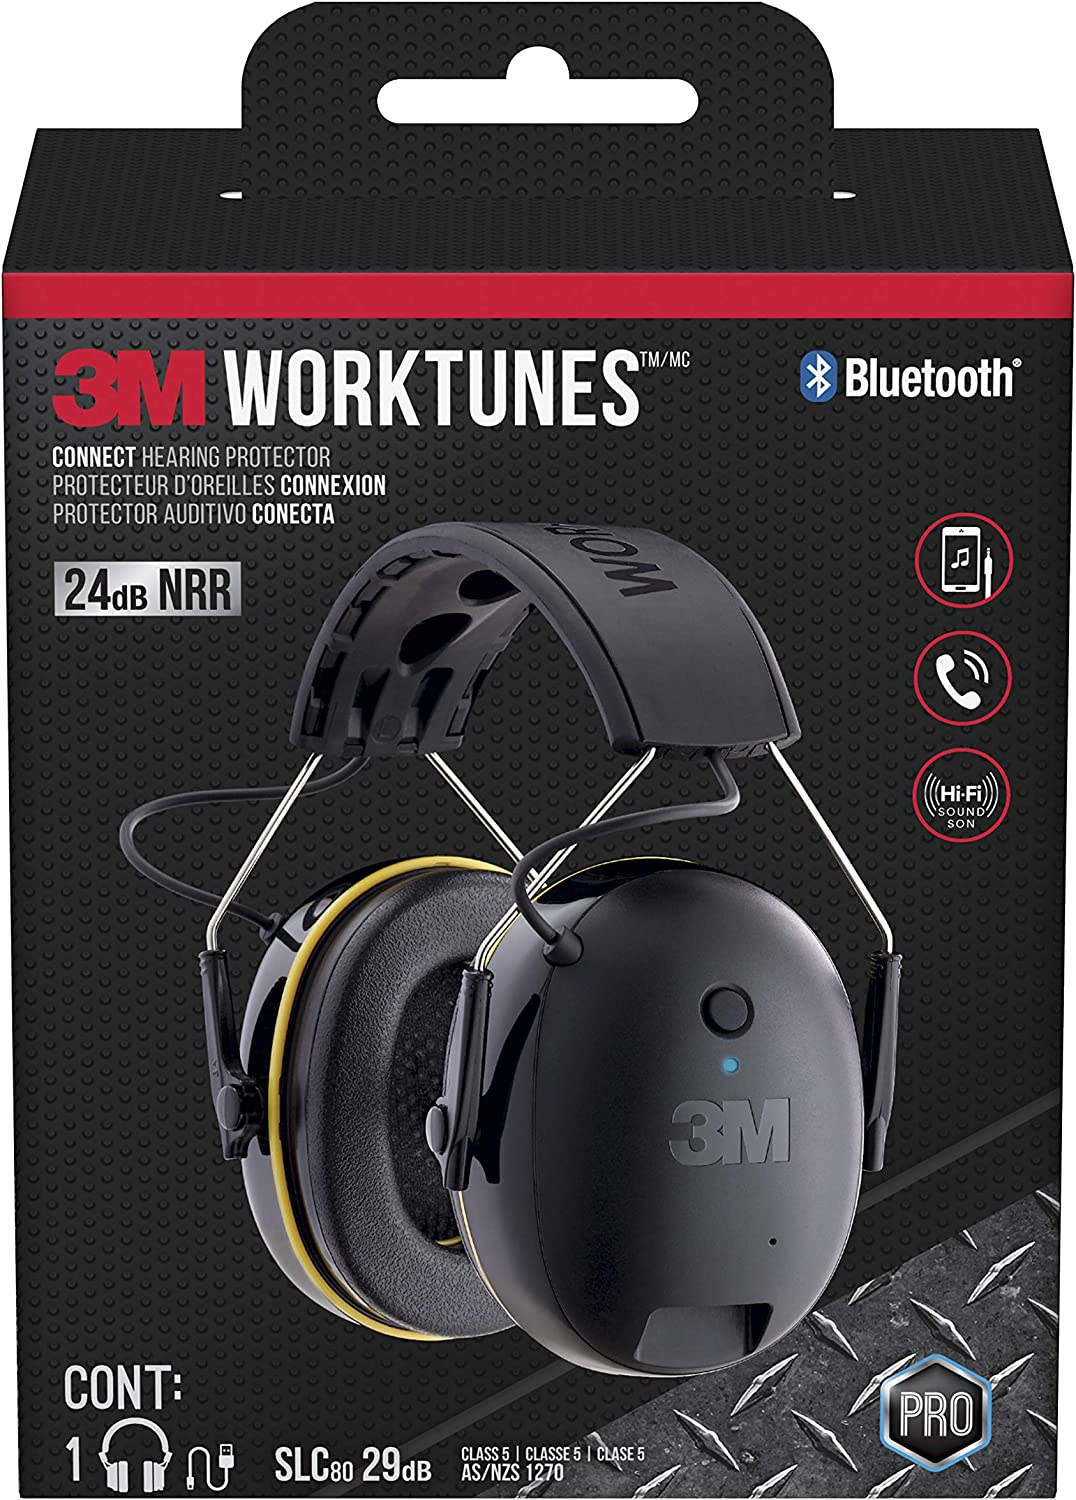 Worktunes Connect Hearing Protector With Bluetooth Technology Amazon Com